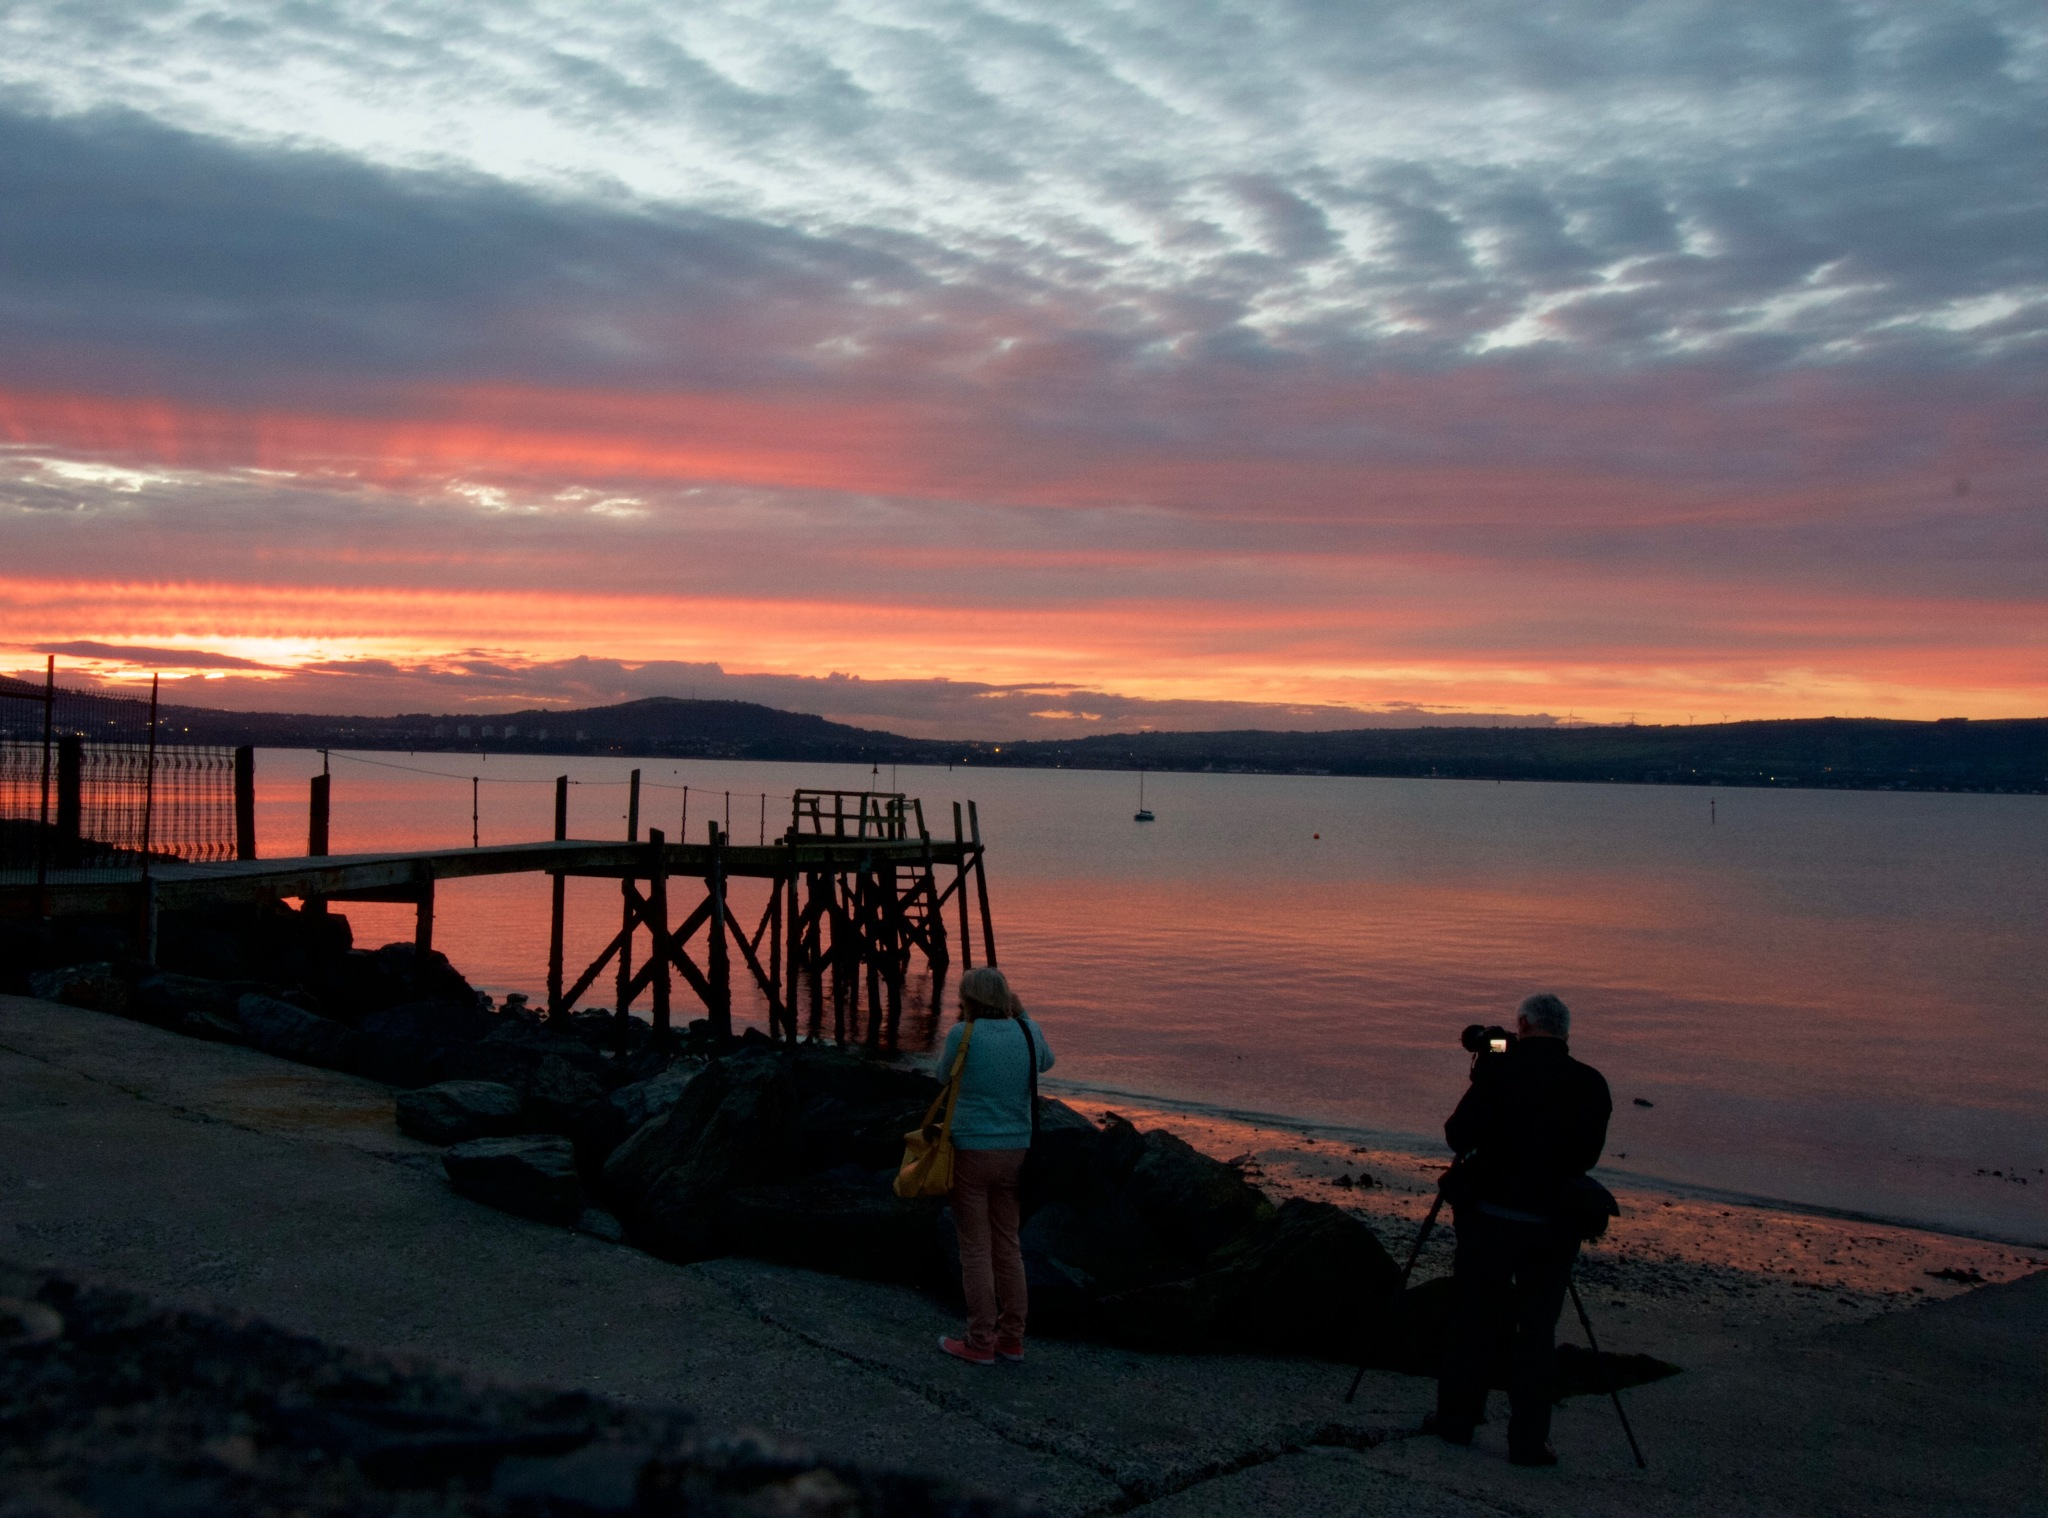 sunset at Holywood, Co Down by dbards